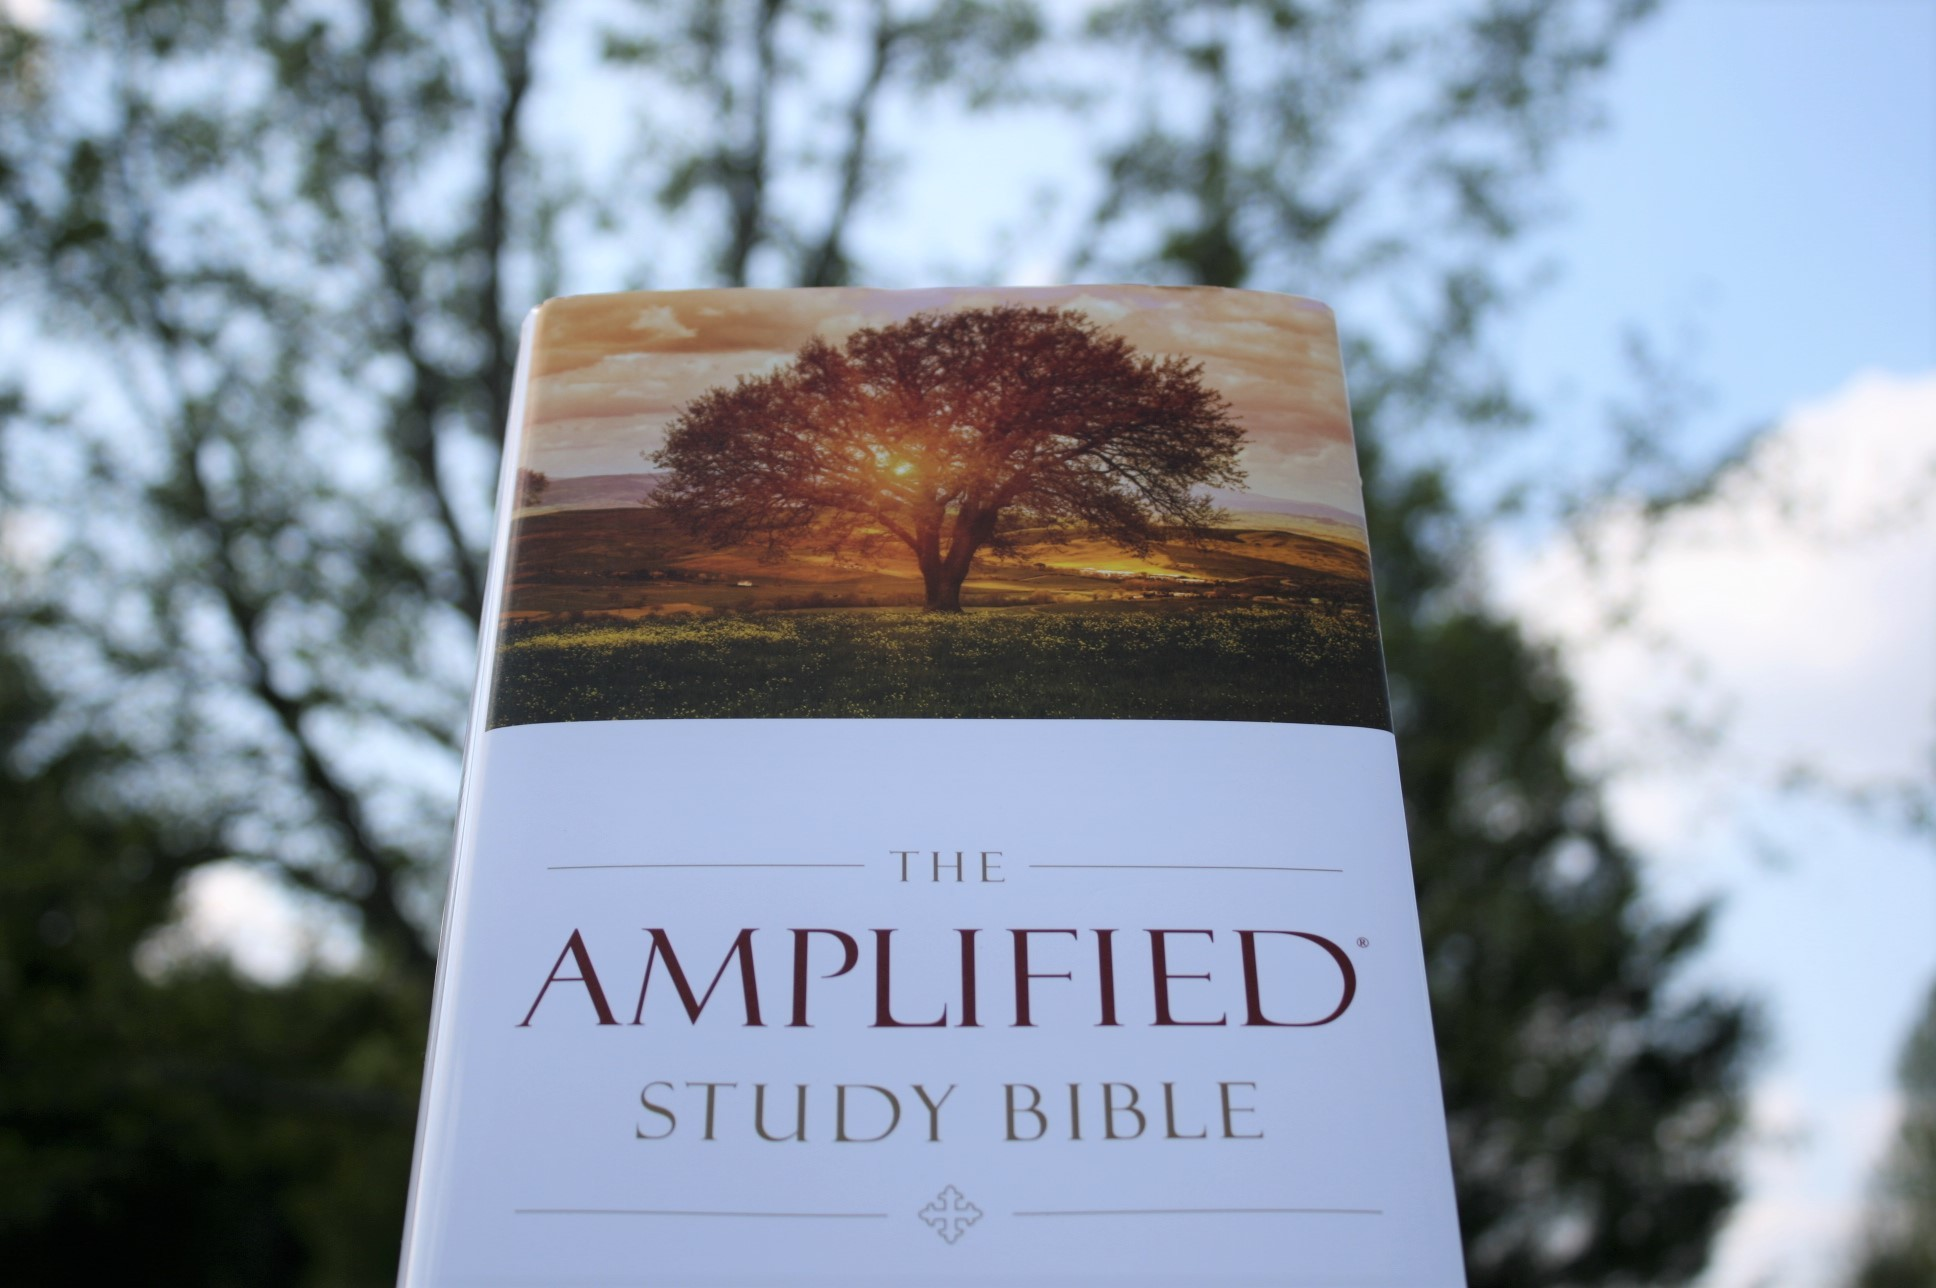 Amplified Study Bible Review Bible Buying Guide